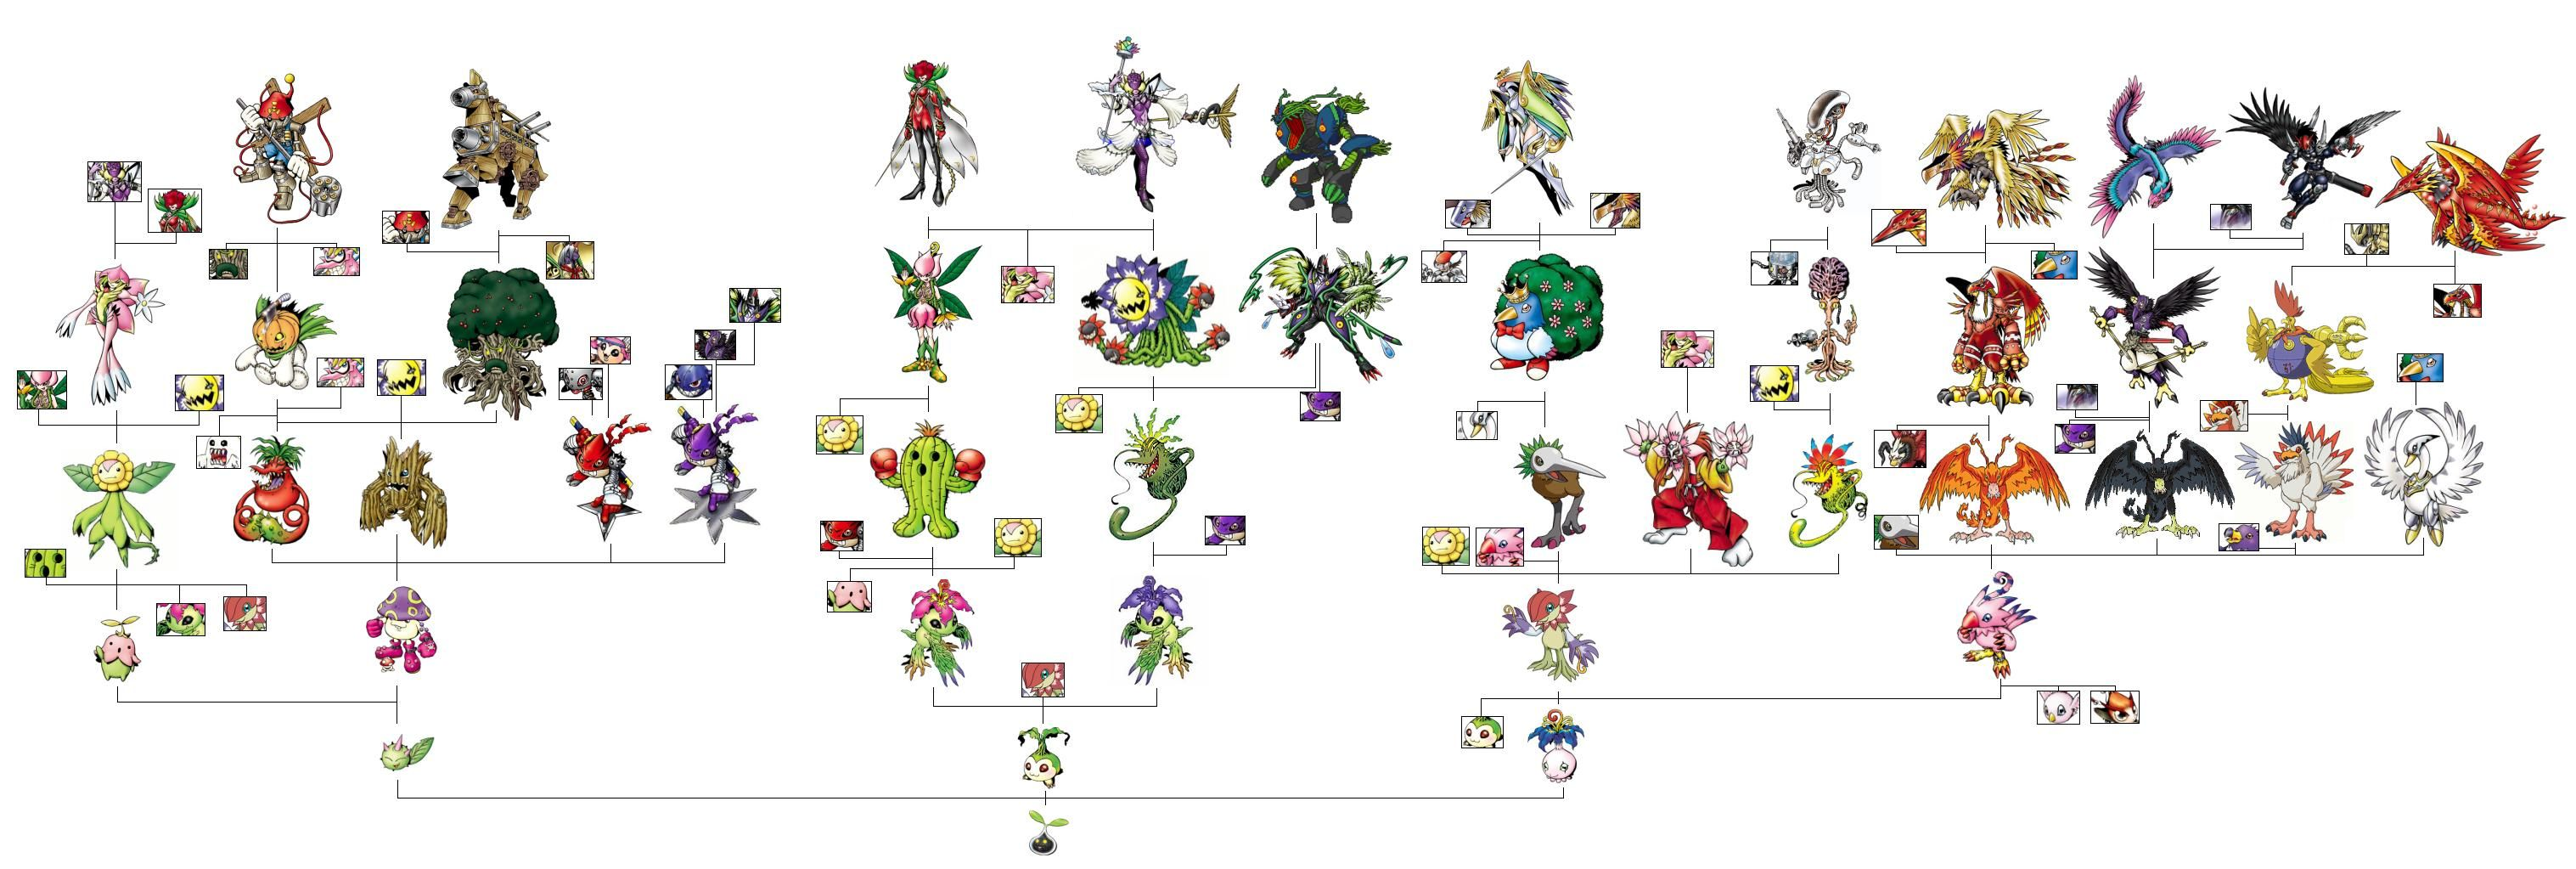 Palmon Evolution Chart